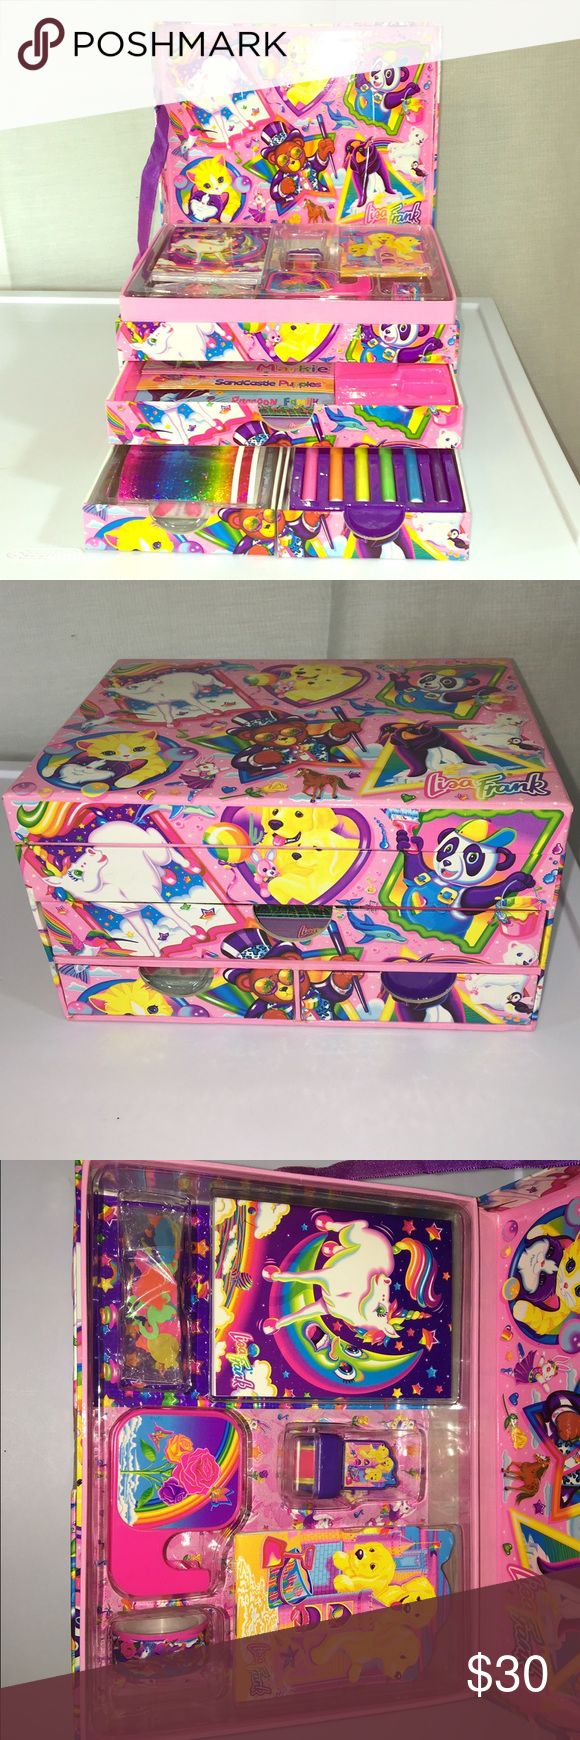 Lisa Frank Stationary Box A vintage Lisa Frank stationary box that is still in very good condition and contains most of the original items, including stationary items, envelopes, markers, and nail design supplies. A hard to find item at a great price! Lisa Frank Other